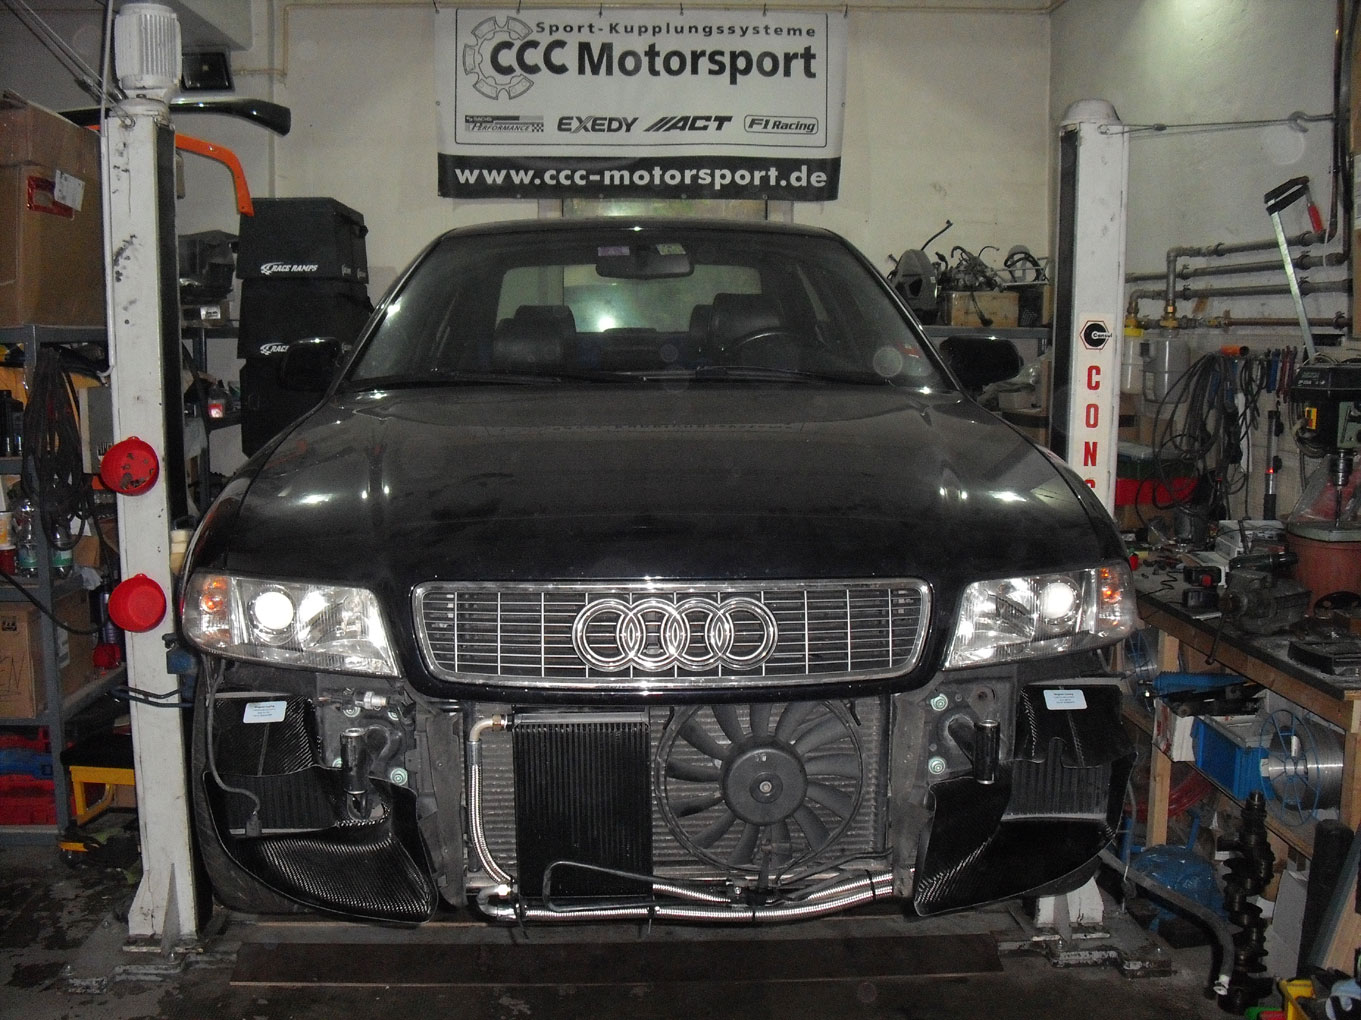 S Quattro KW PS AZB AGB Année - Wagner audi